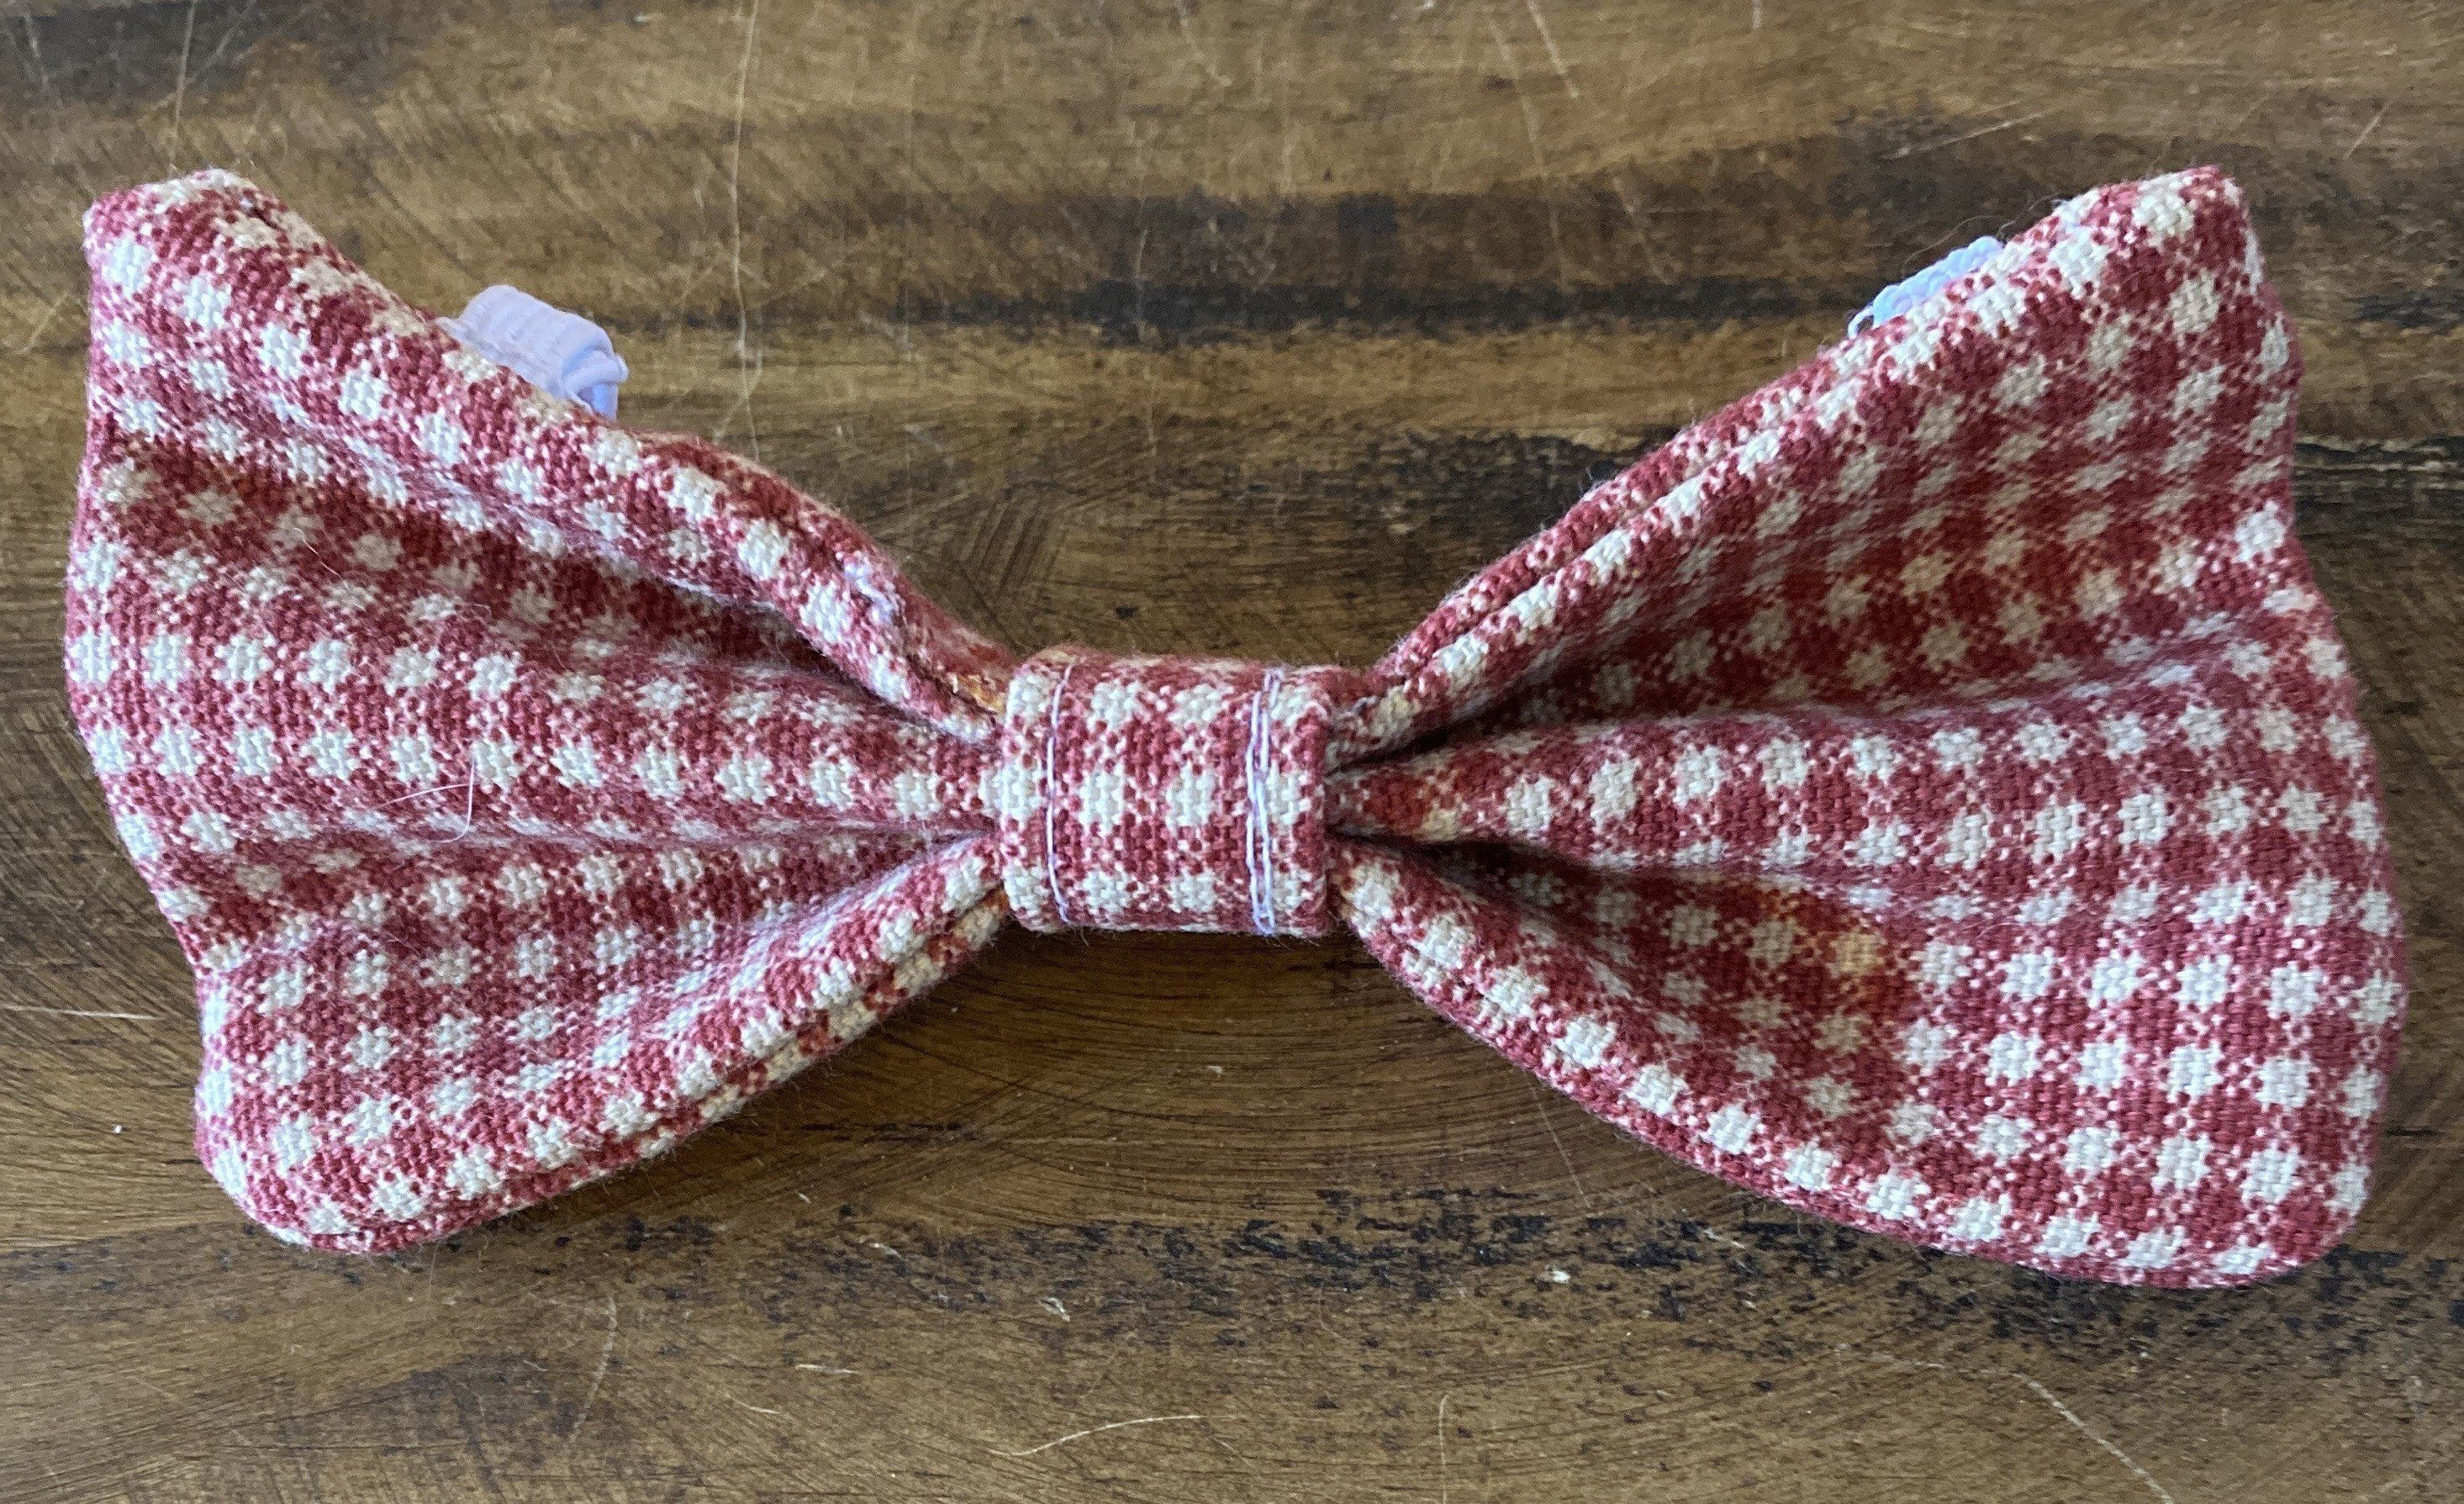 Excited to share this item from my #etsy shop: Christmas gingham bow tie for dogs and puppies #red #beige #christmas #giftsforpuppies #giftsfordogs #dogcollarbowtie #mediumsizedog #readytoship #freeshipping